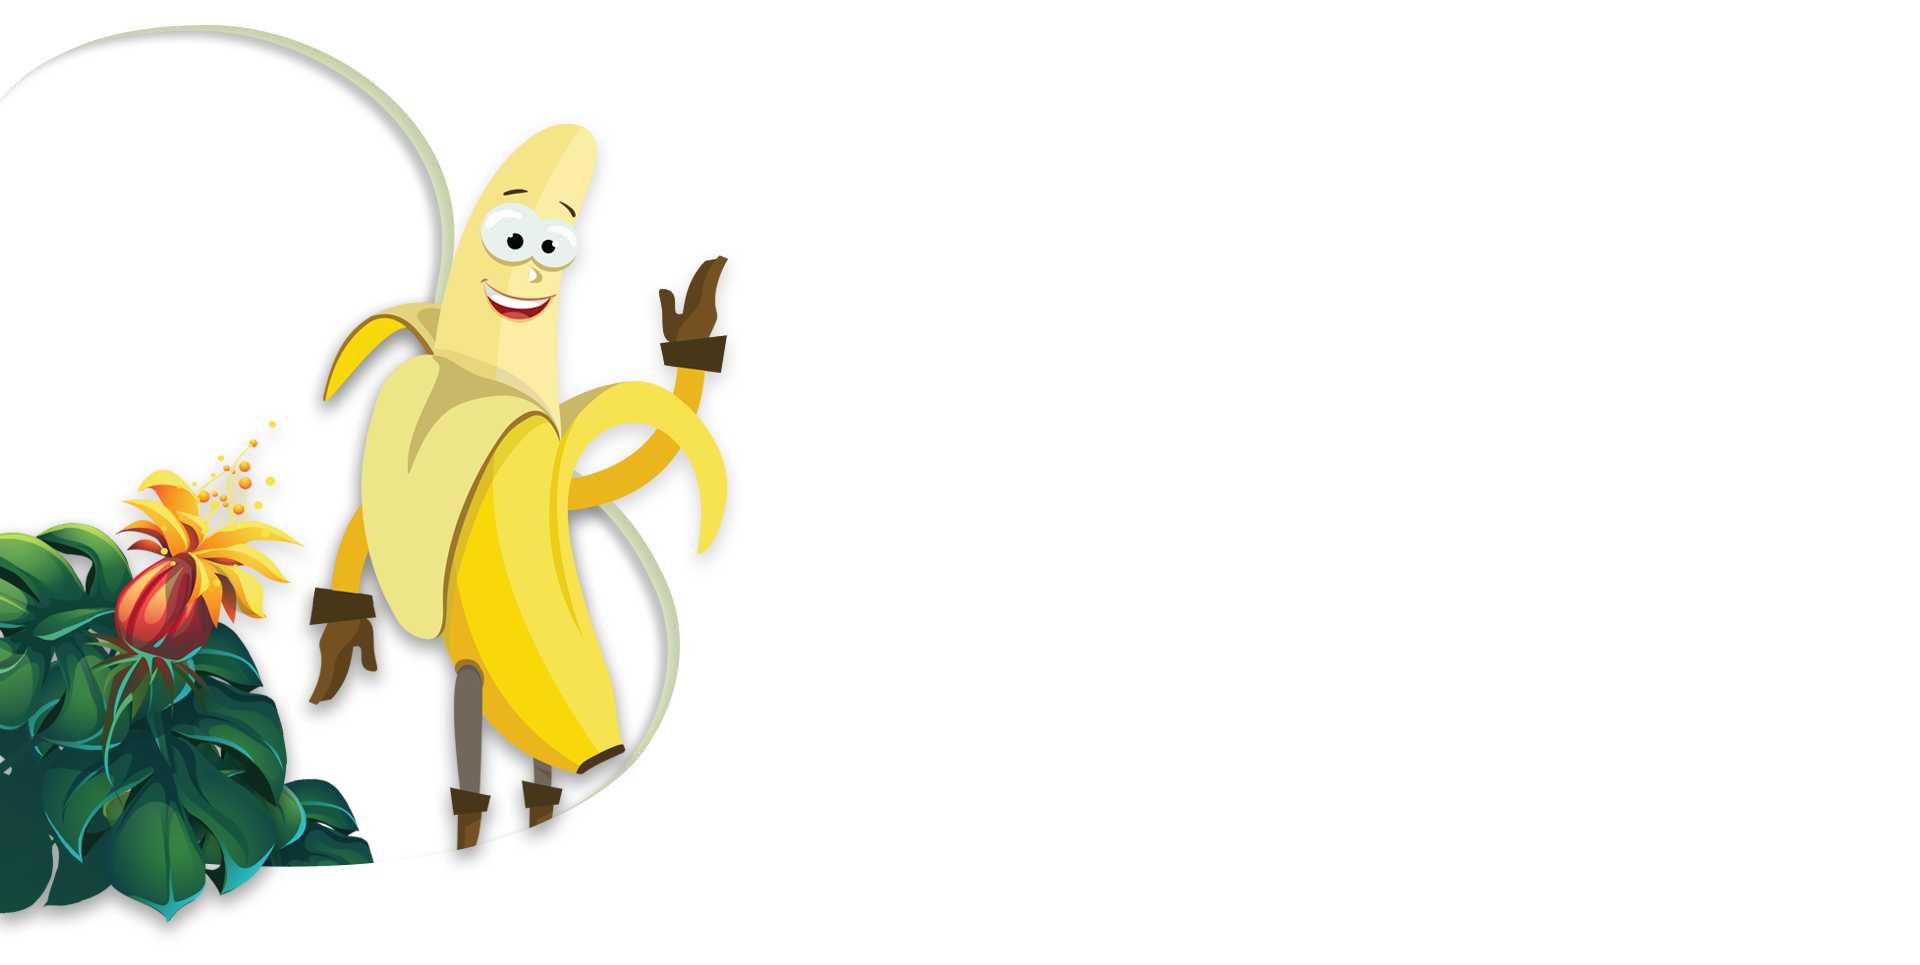 friendly banana